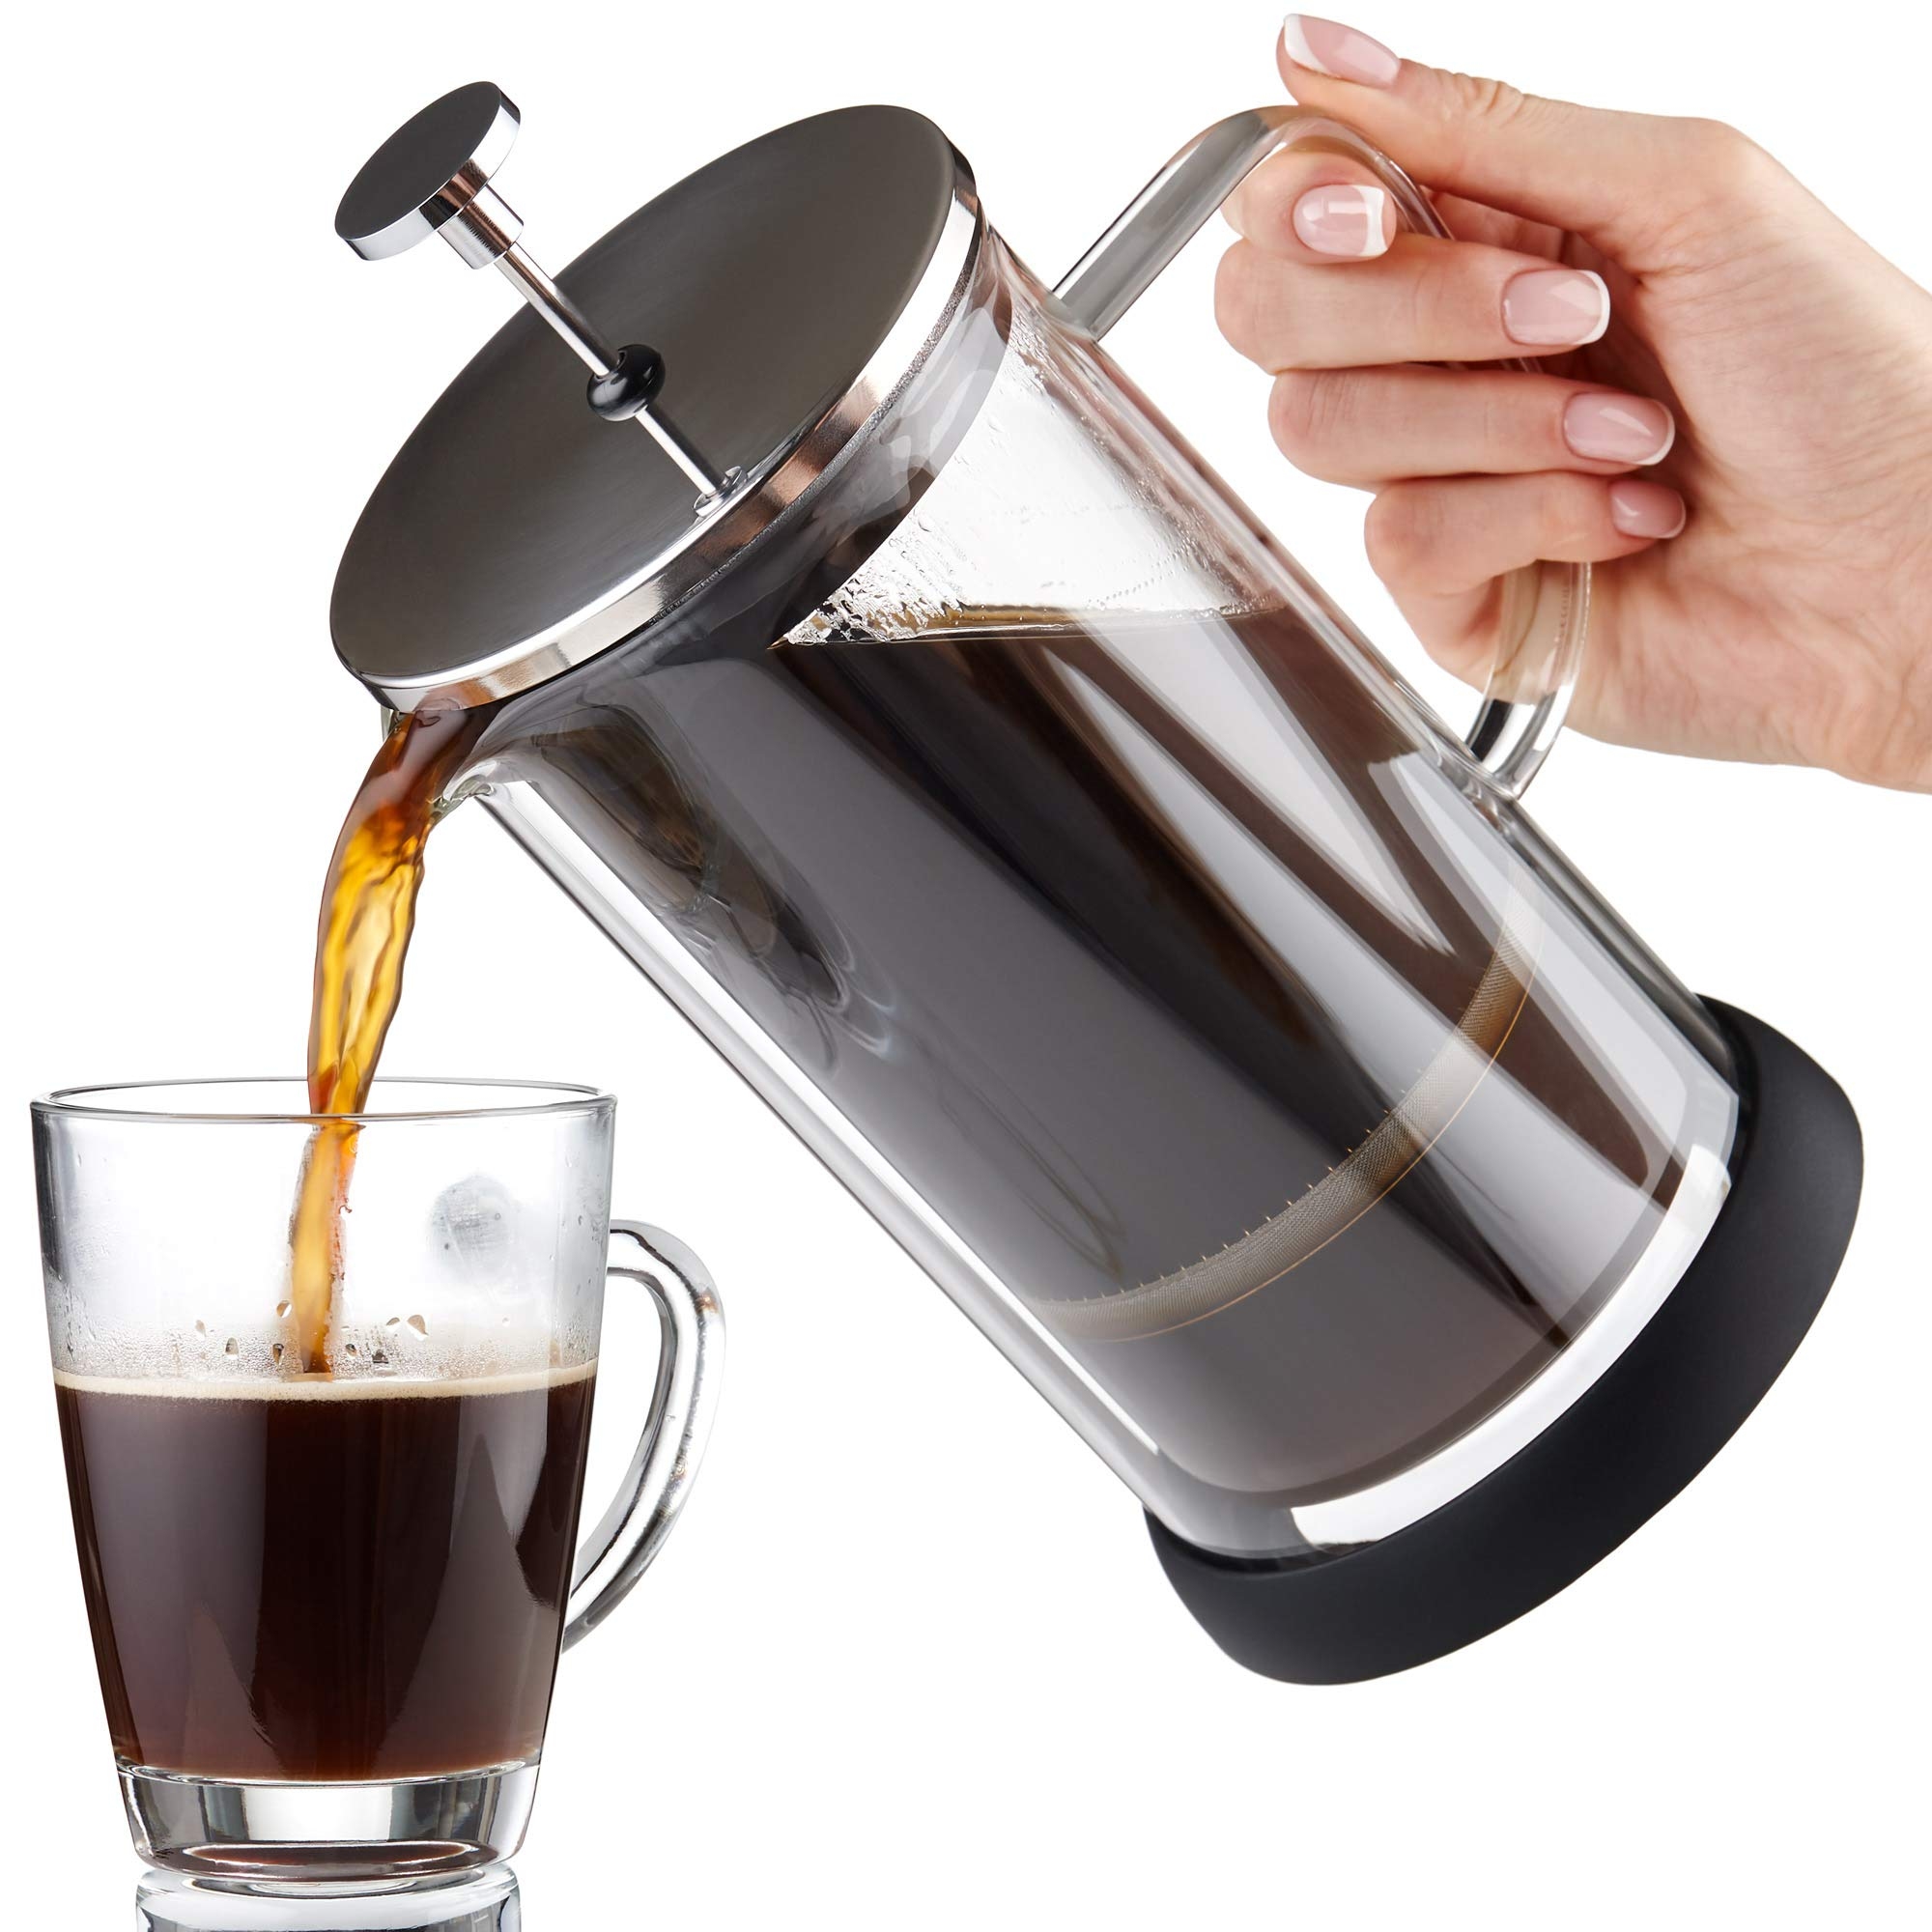 French Press Coffee Maker 34 oz - Double Glass Design Holds Heat, Dual Filters Provide a Smooth Brew - Includes 2 Additional Mesh Filters